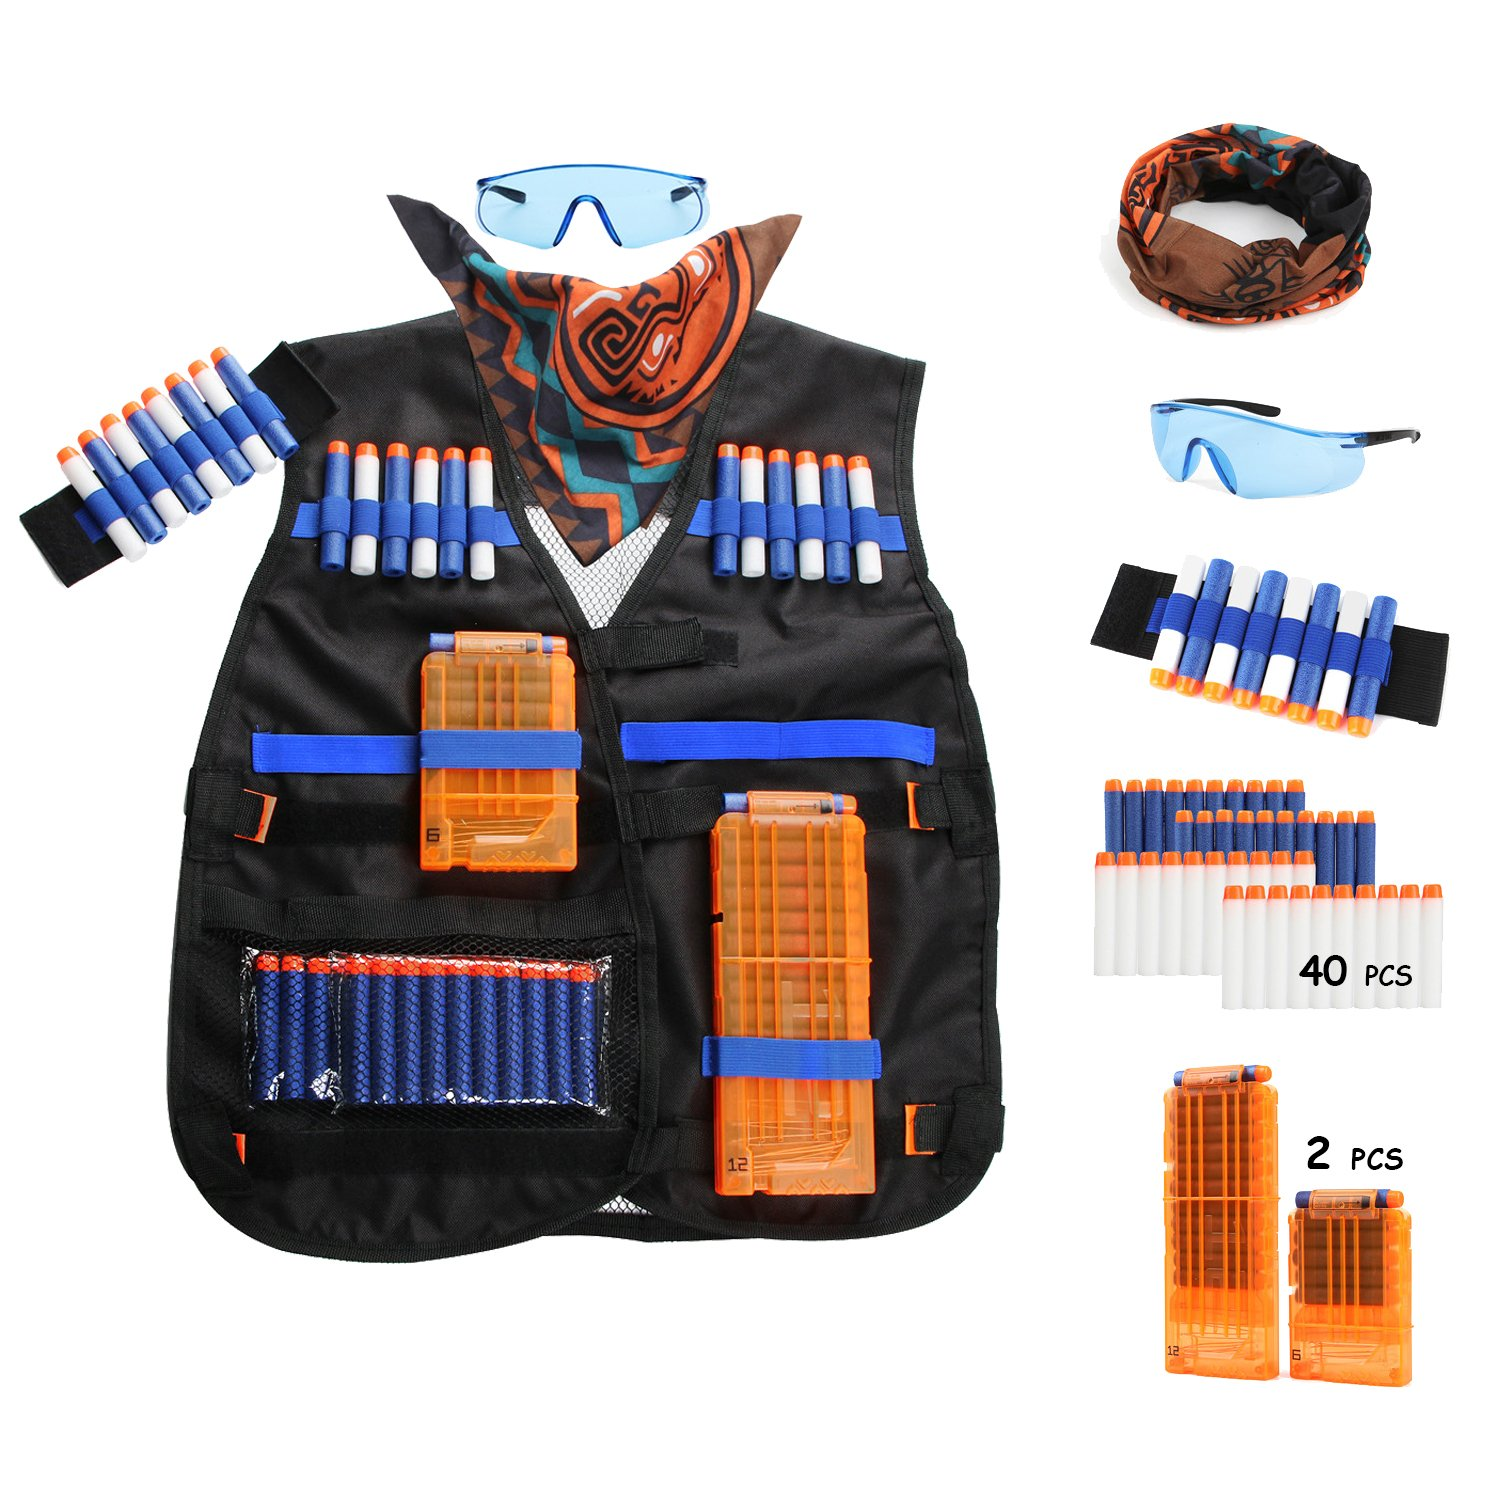 AFALA Tactical Vest kits for Nerf N-Strike Elite Series with 40 Refill Darts + 2 Reload Clips + Face Tube Mask + Protective Glasses by Afala